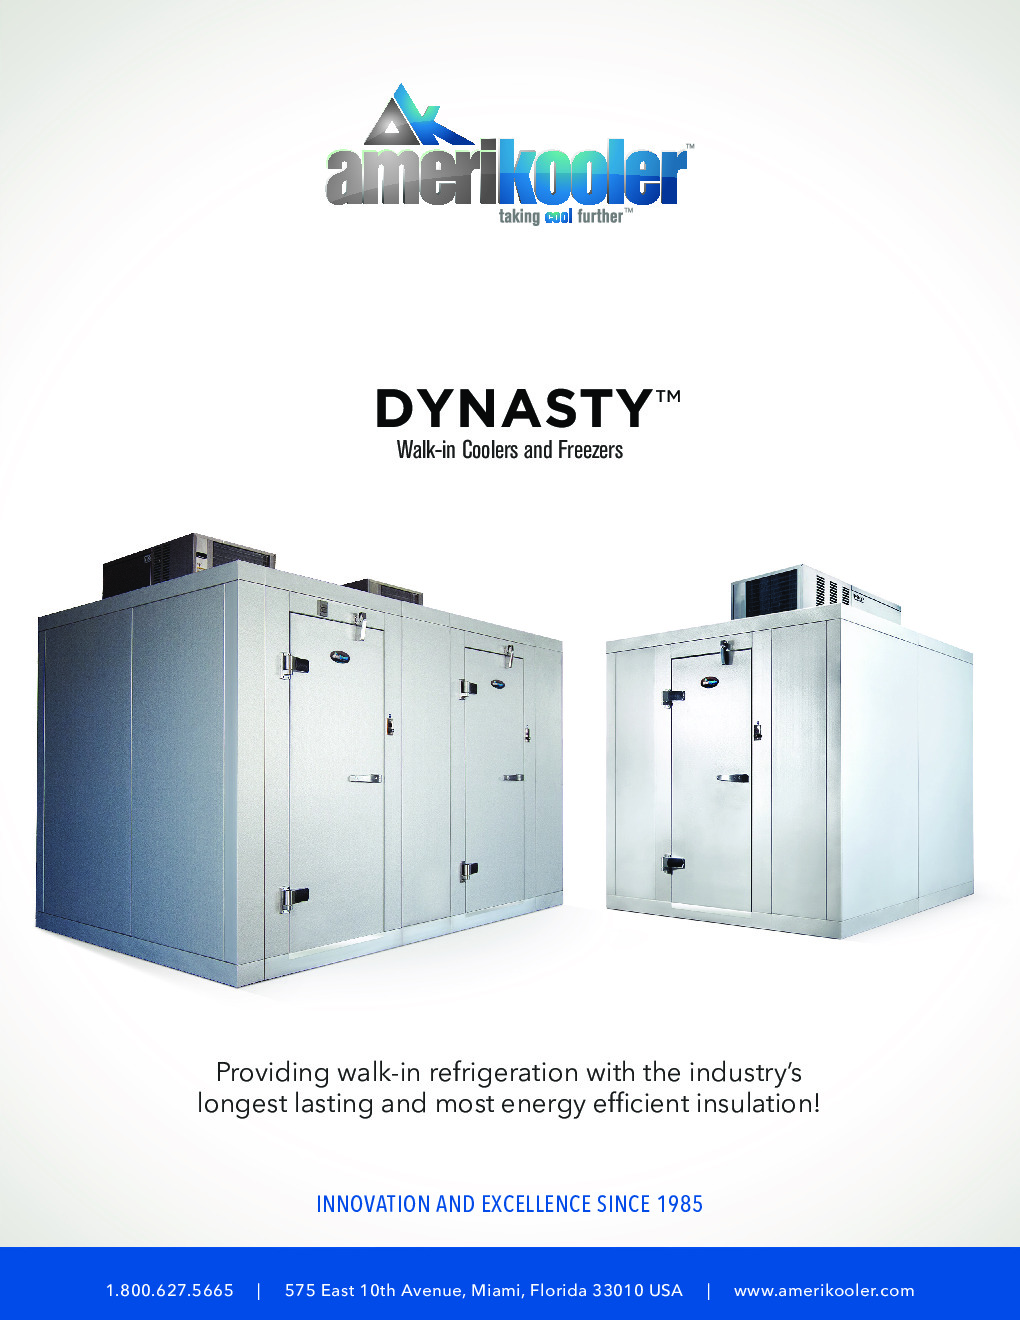 AmeriKooler DW081877F-9/9-SC 8' X 18' Walk-In Cooler, 9' L Cooler with Floor and 9' L Freezer, Self Contained